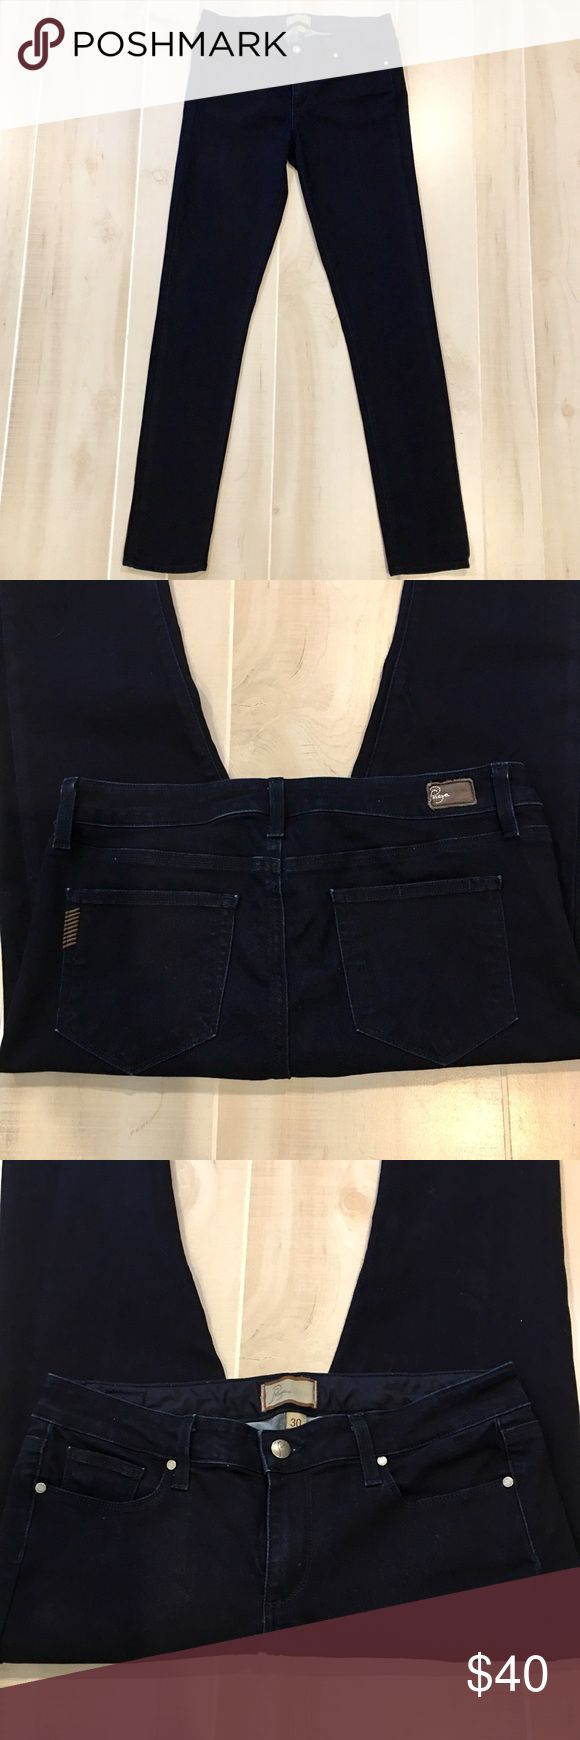 "Paige Peg Skinny Dark Ink Blue wash 30X33 Pristine condition!  Like New!  Size 30.  Dark wash.  Inseam is approx 33"".  Waist is approx 16"".  Rise is approx 8.5"".  77% Cotton, 21% Poly and Elastane. Paige Jeans Jeans Skinny"